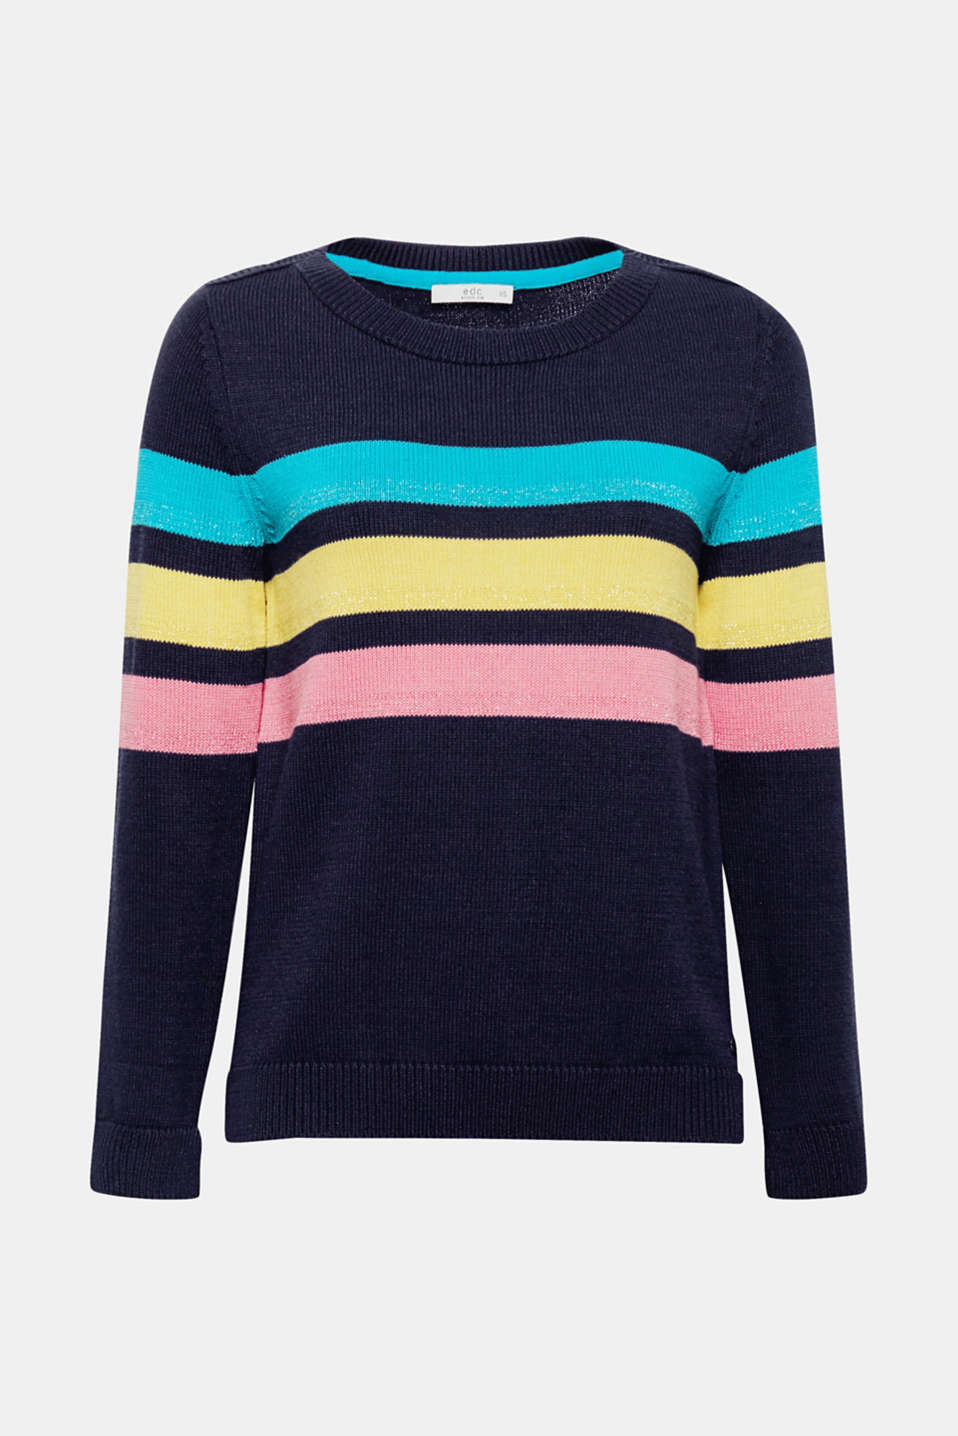 The perfect combination of lightweight knit fabric and colourful stripes This fine knit jumper gets a particular fashionable twist thanks to the decorative stripes with a glitter effect.